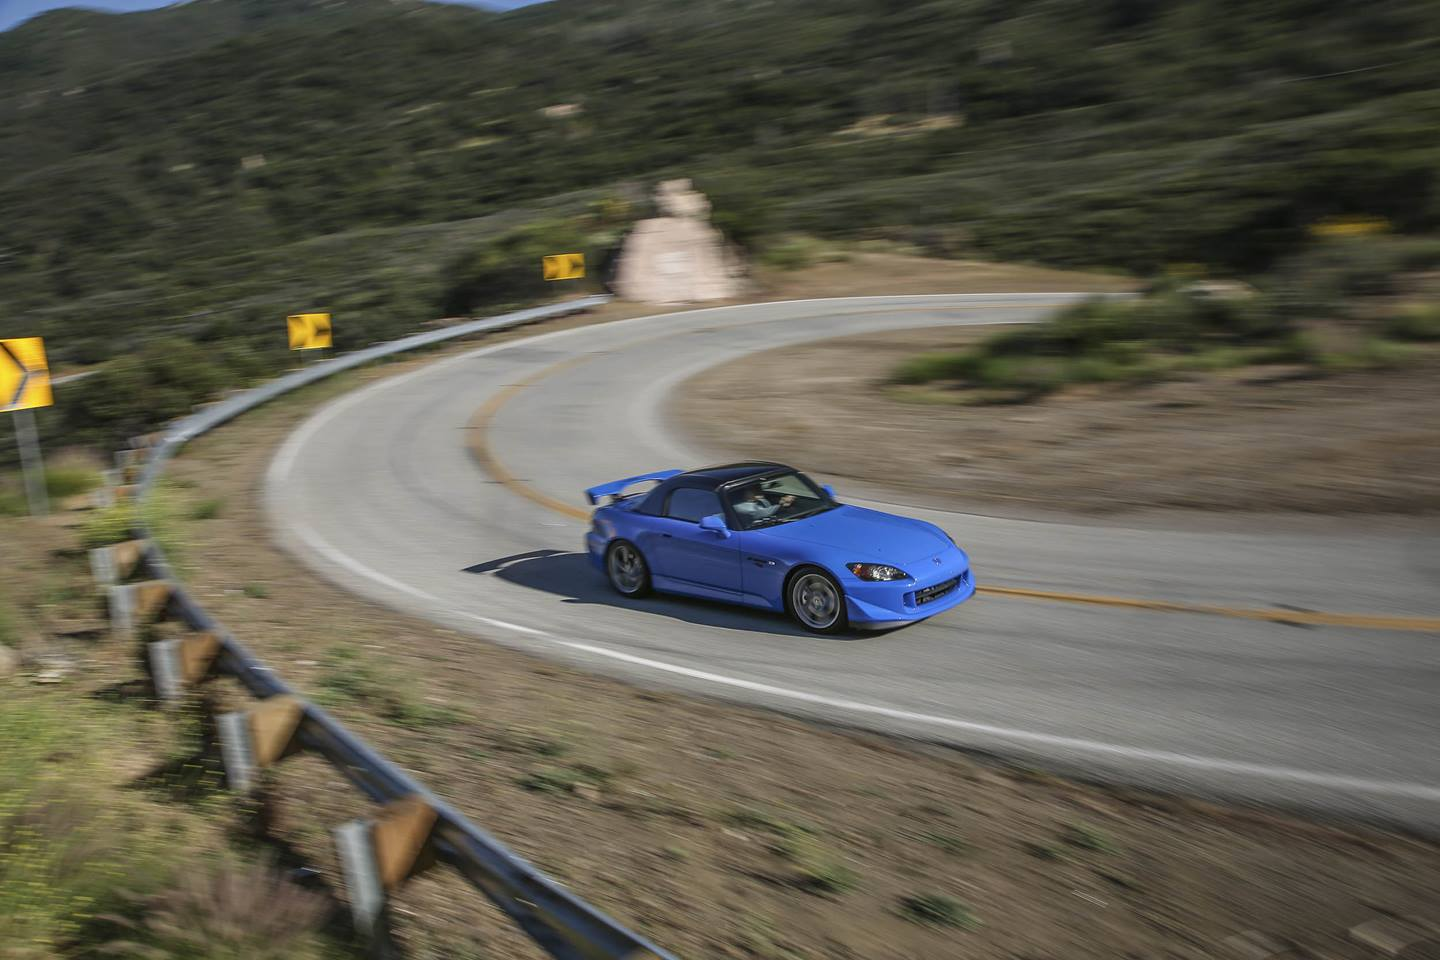 Honda S2000 turning corner